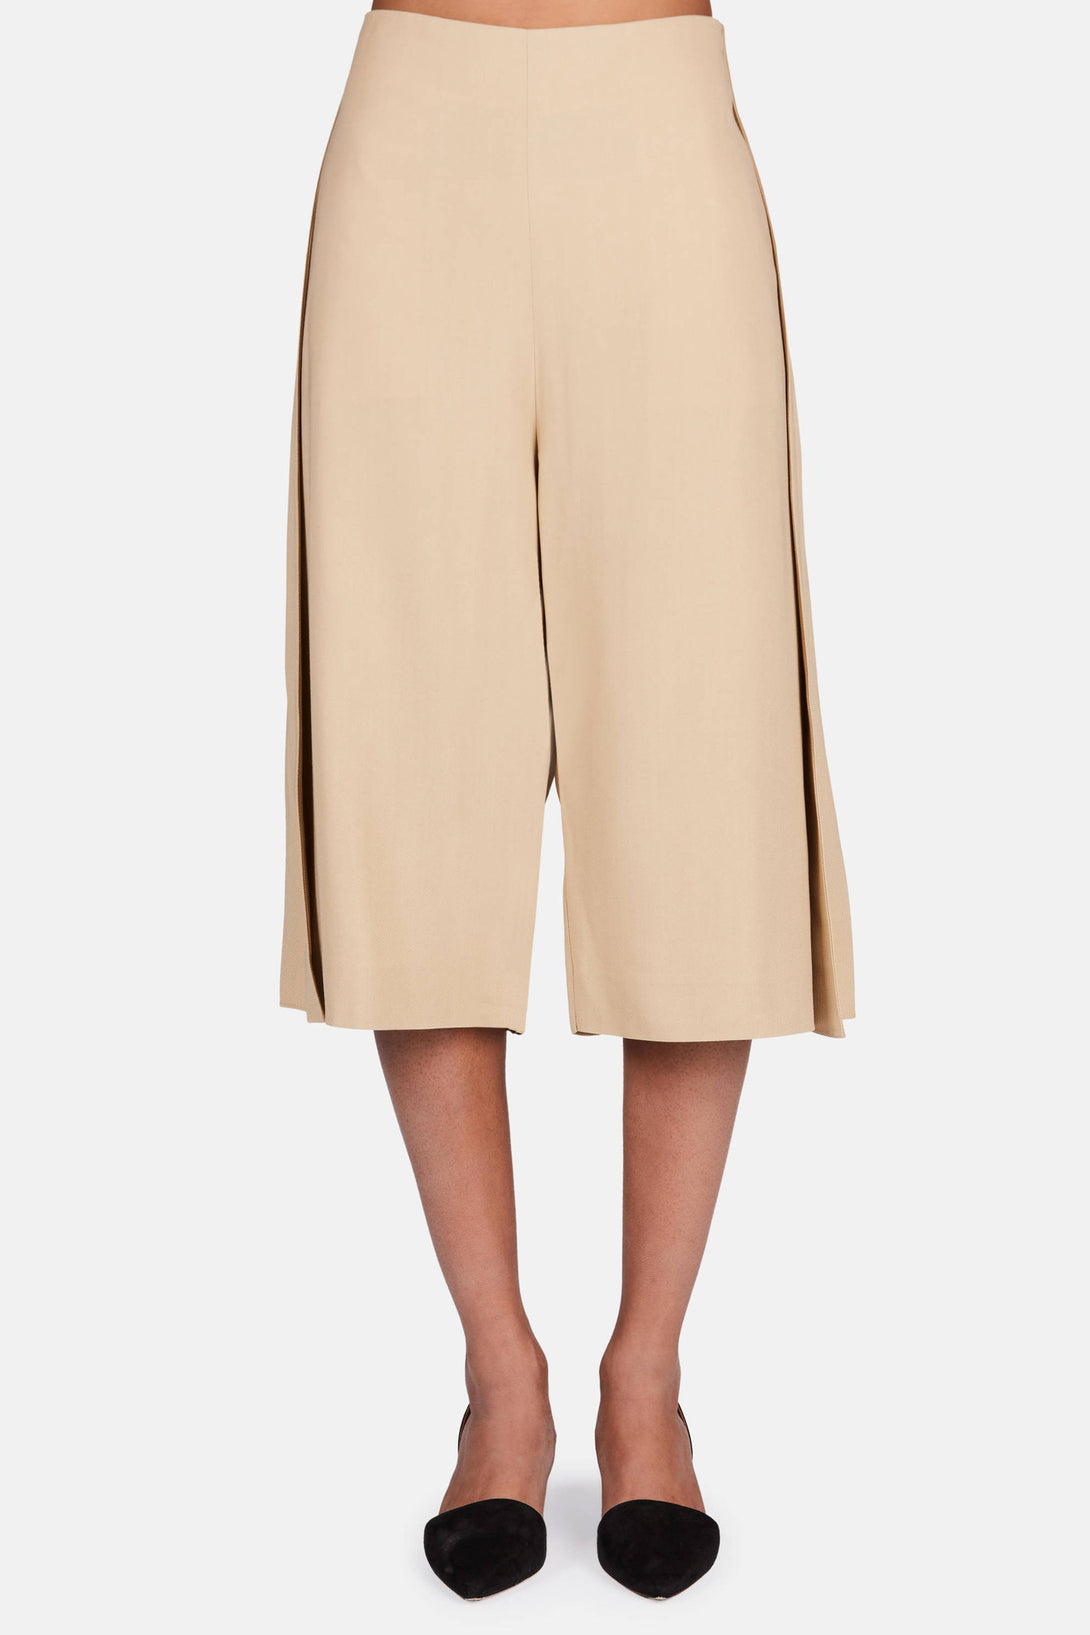 Caryn Crepe Shorts - Light Sand